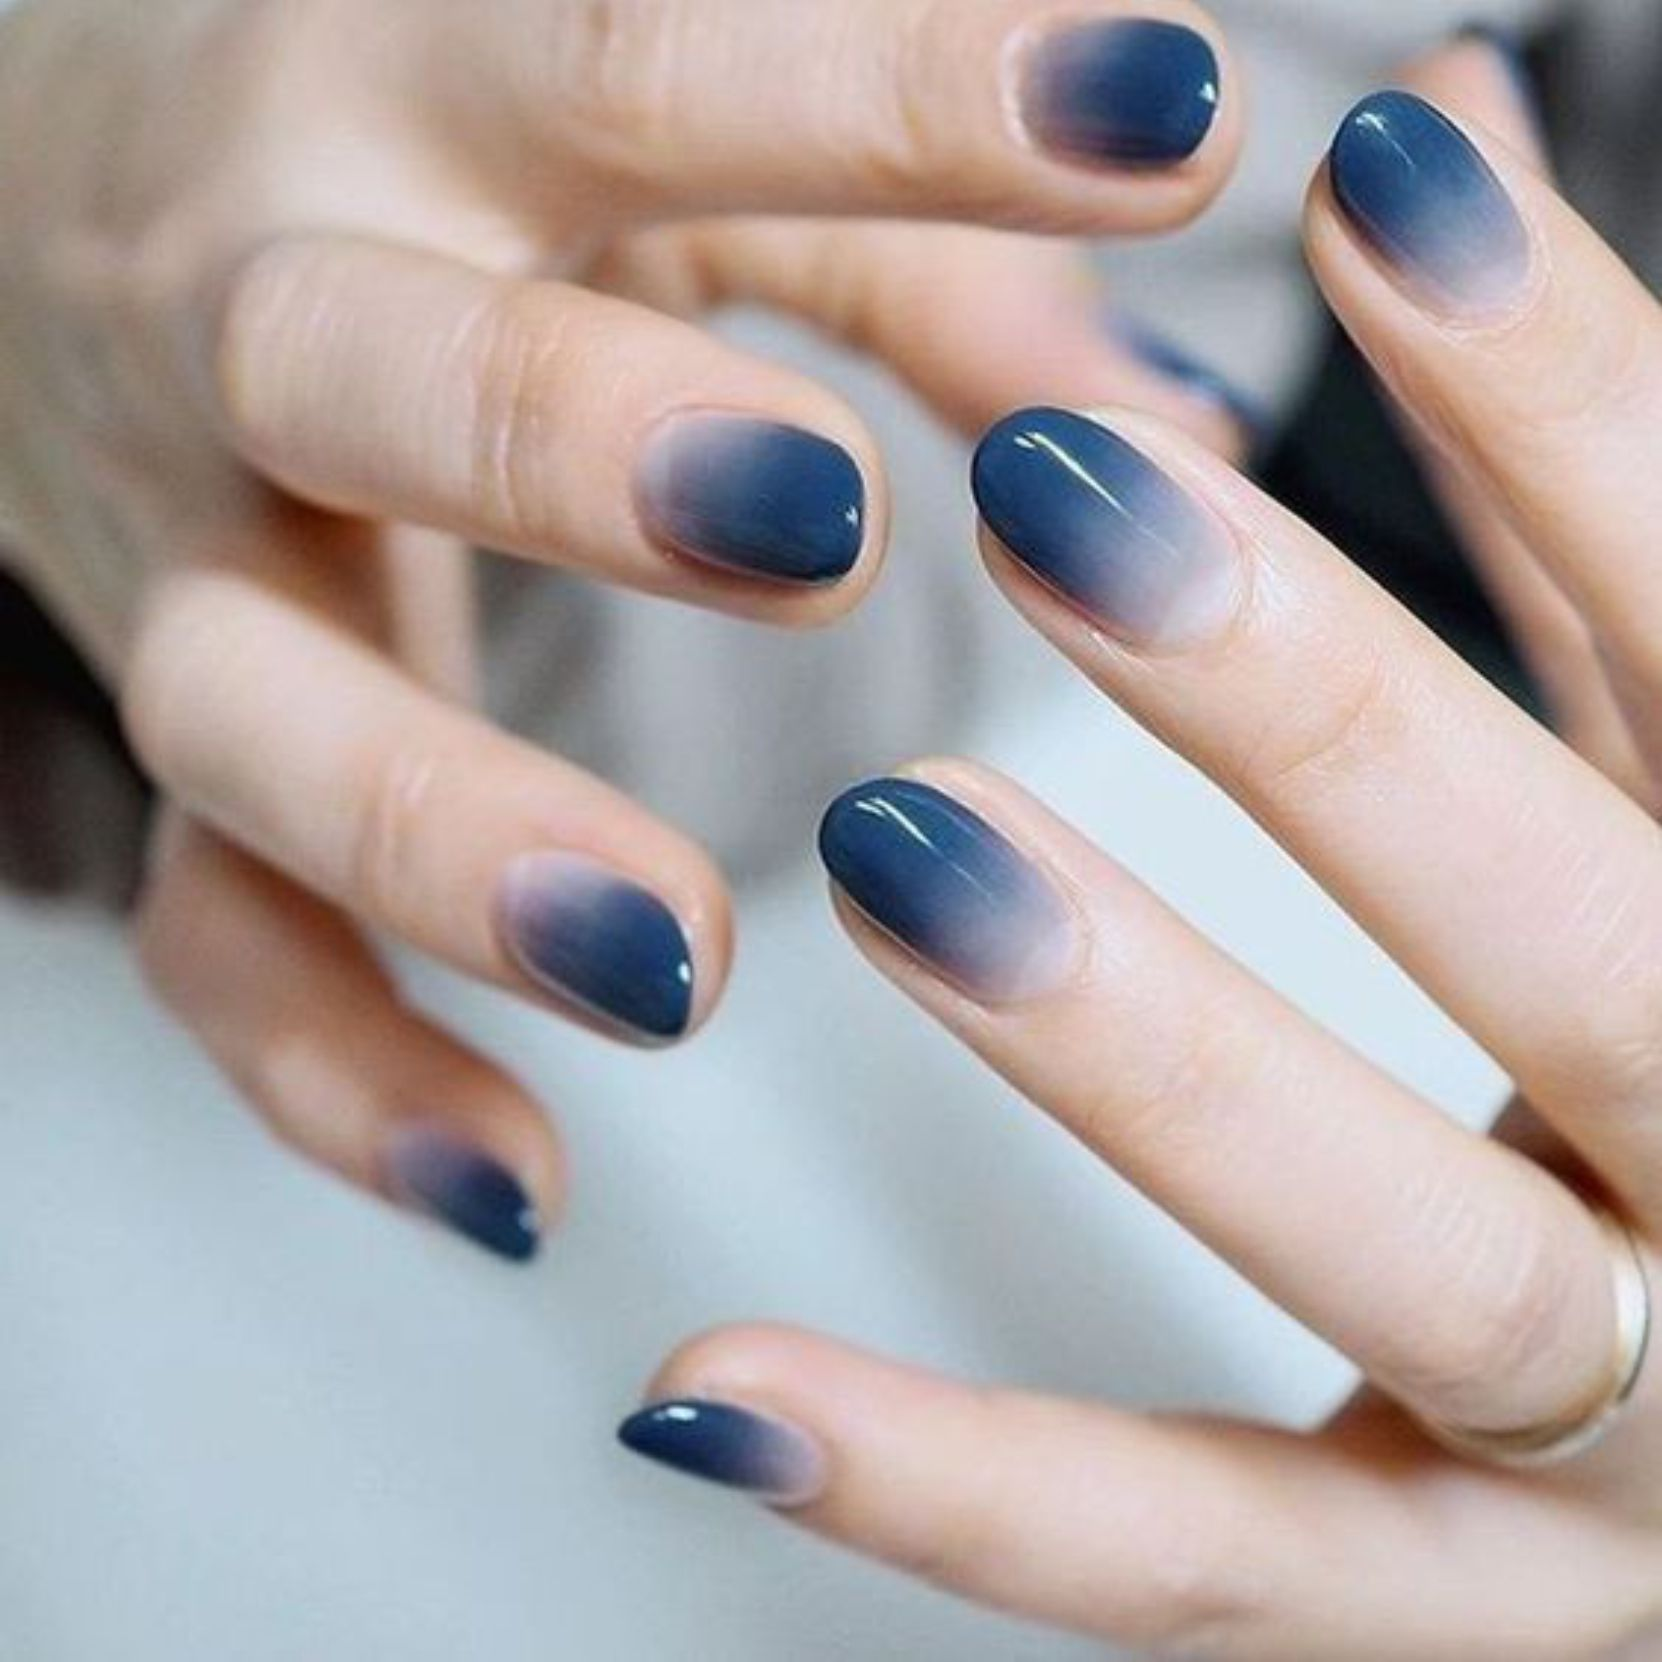 45 Classy Spring Nail Color Designs For Your Exceptional Style In 2020 Simple Nails Gradient Nails Gel Nails